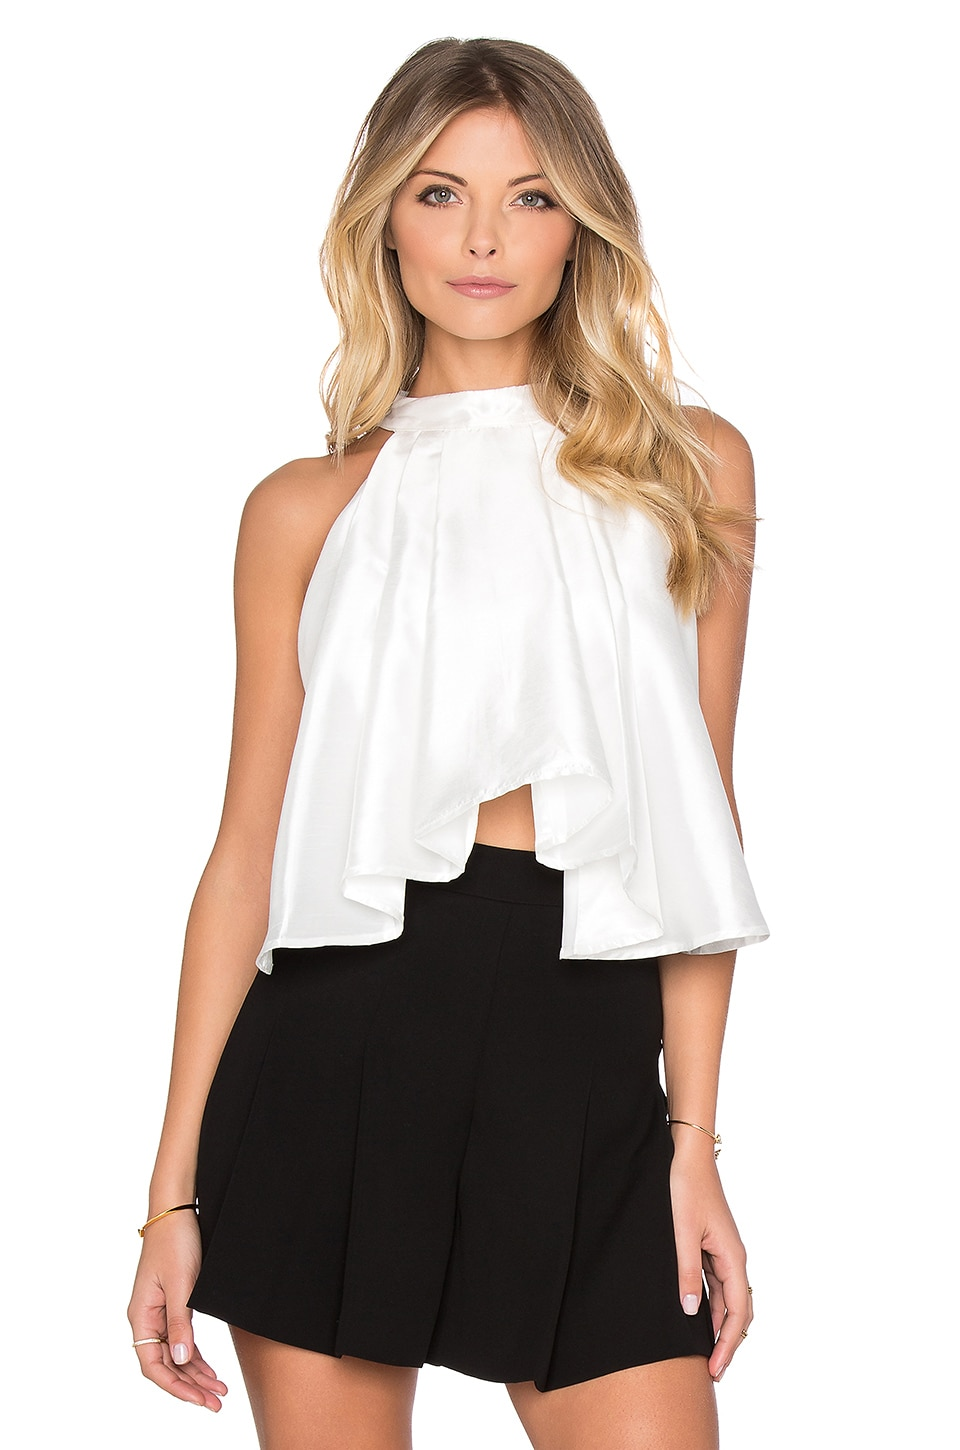 ASILIO Absent Minded Crop Top in Gloss White